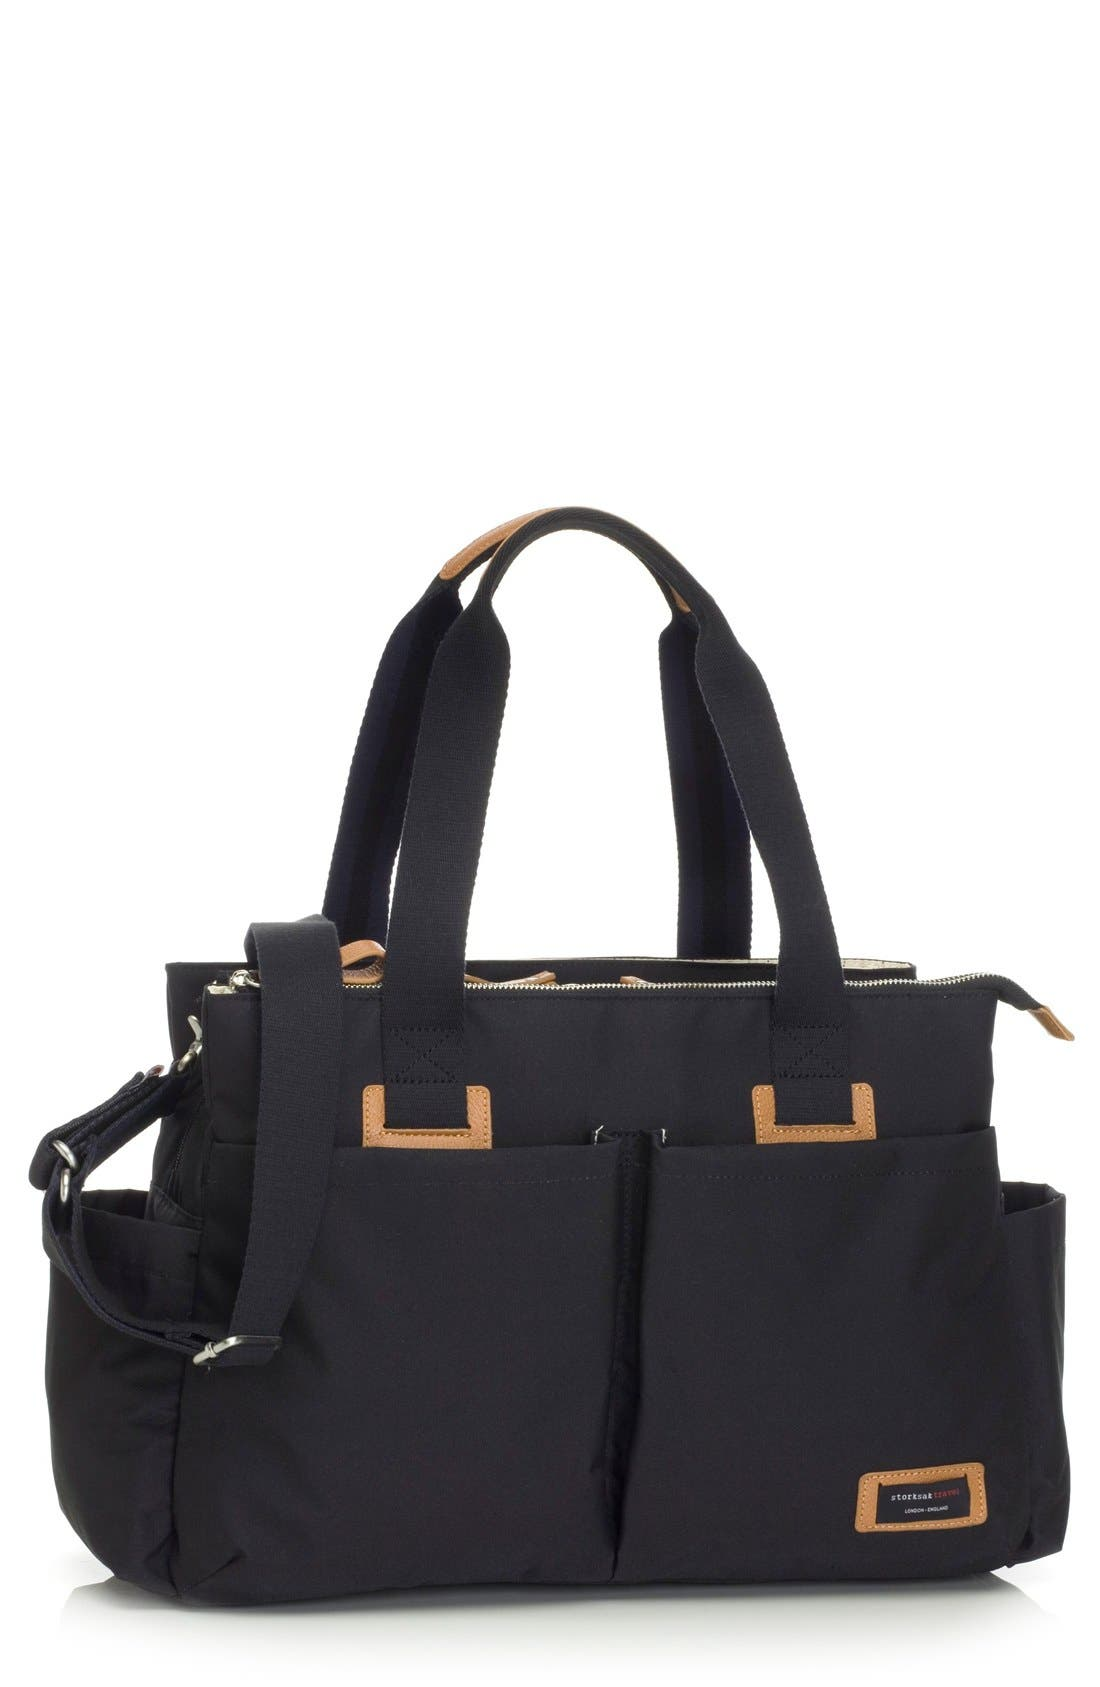 Storksak Diaper Shoulder Bag